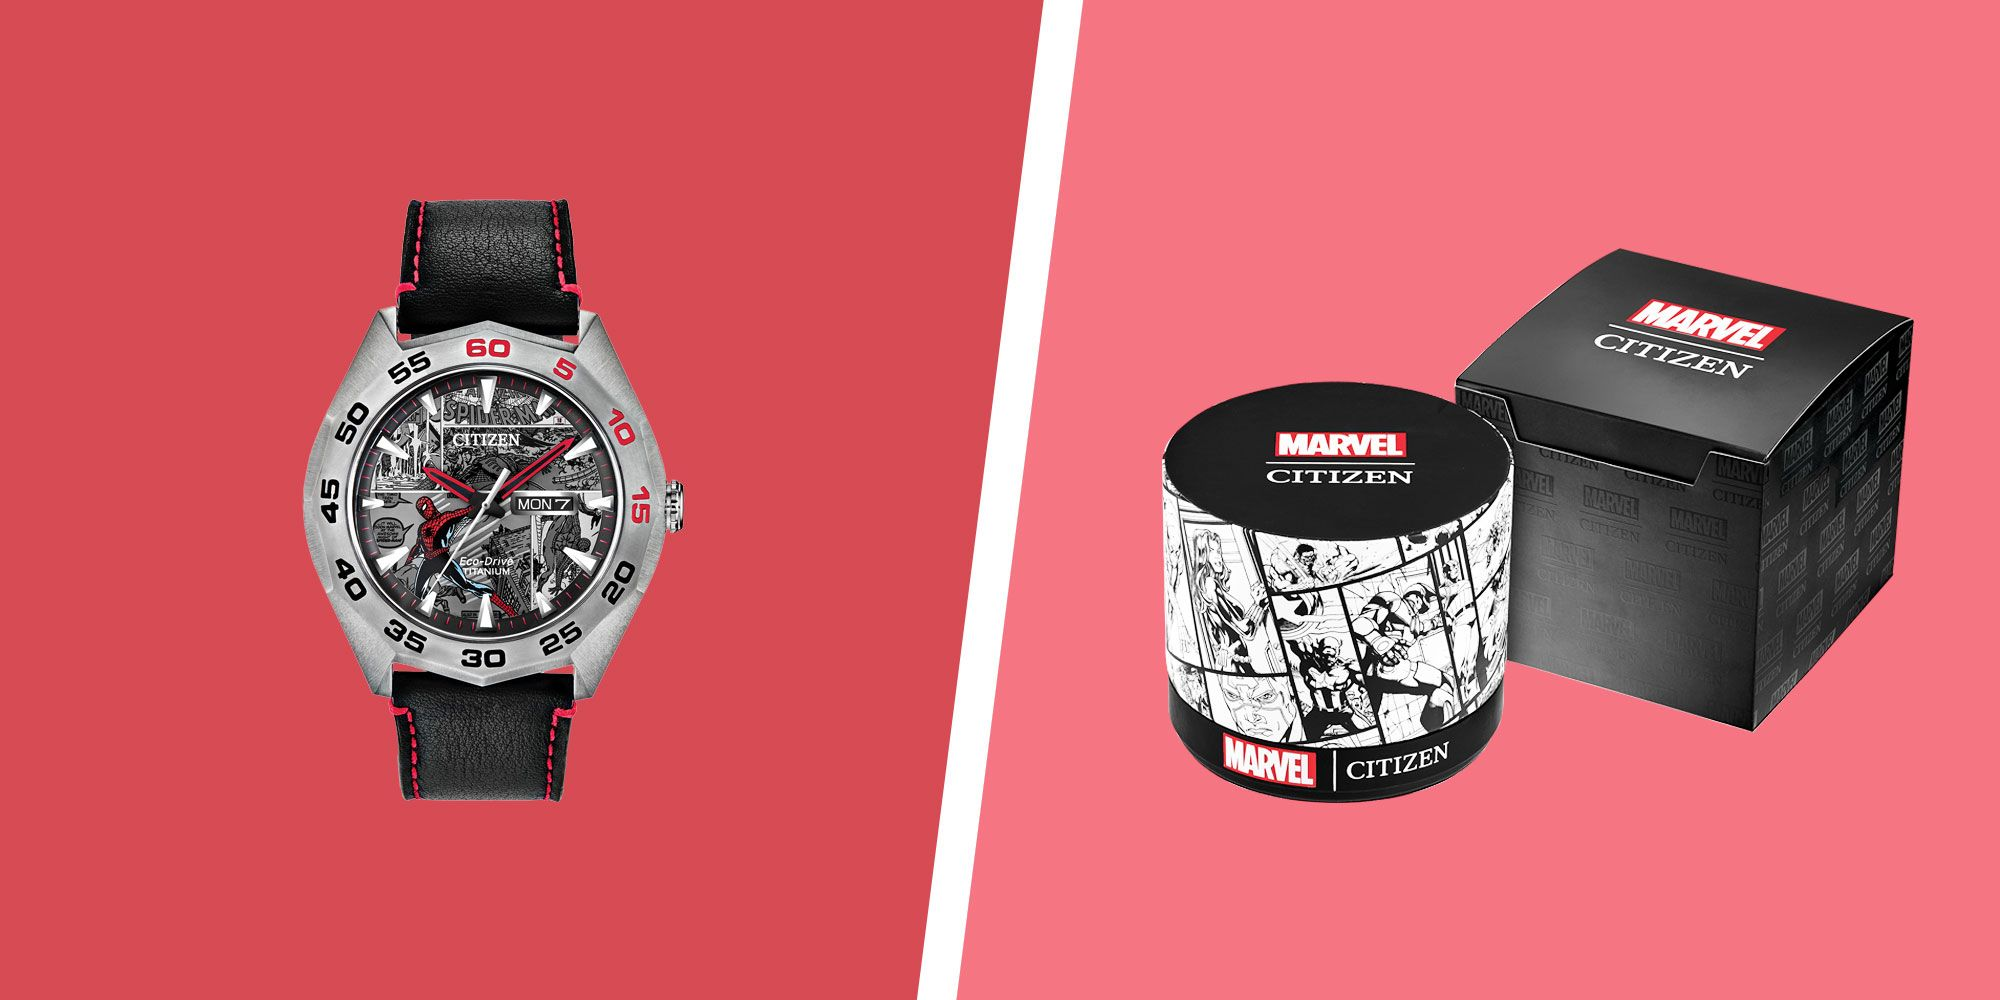 Get an Exclusive First Look at the New Marvel x Citizen Watches